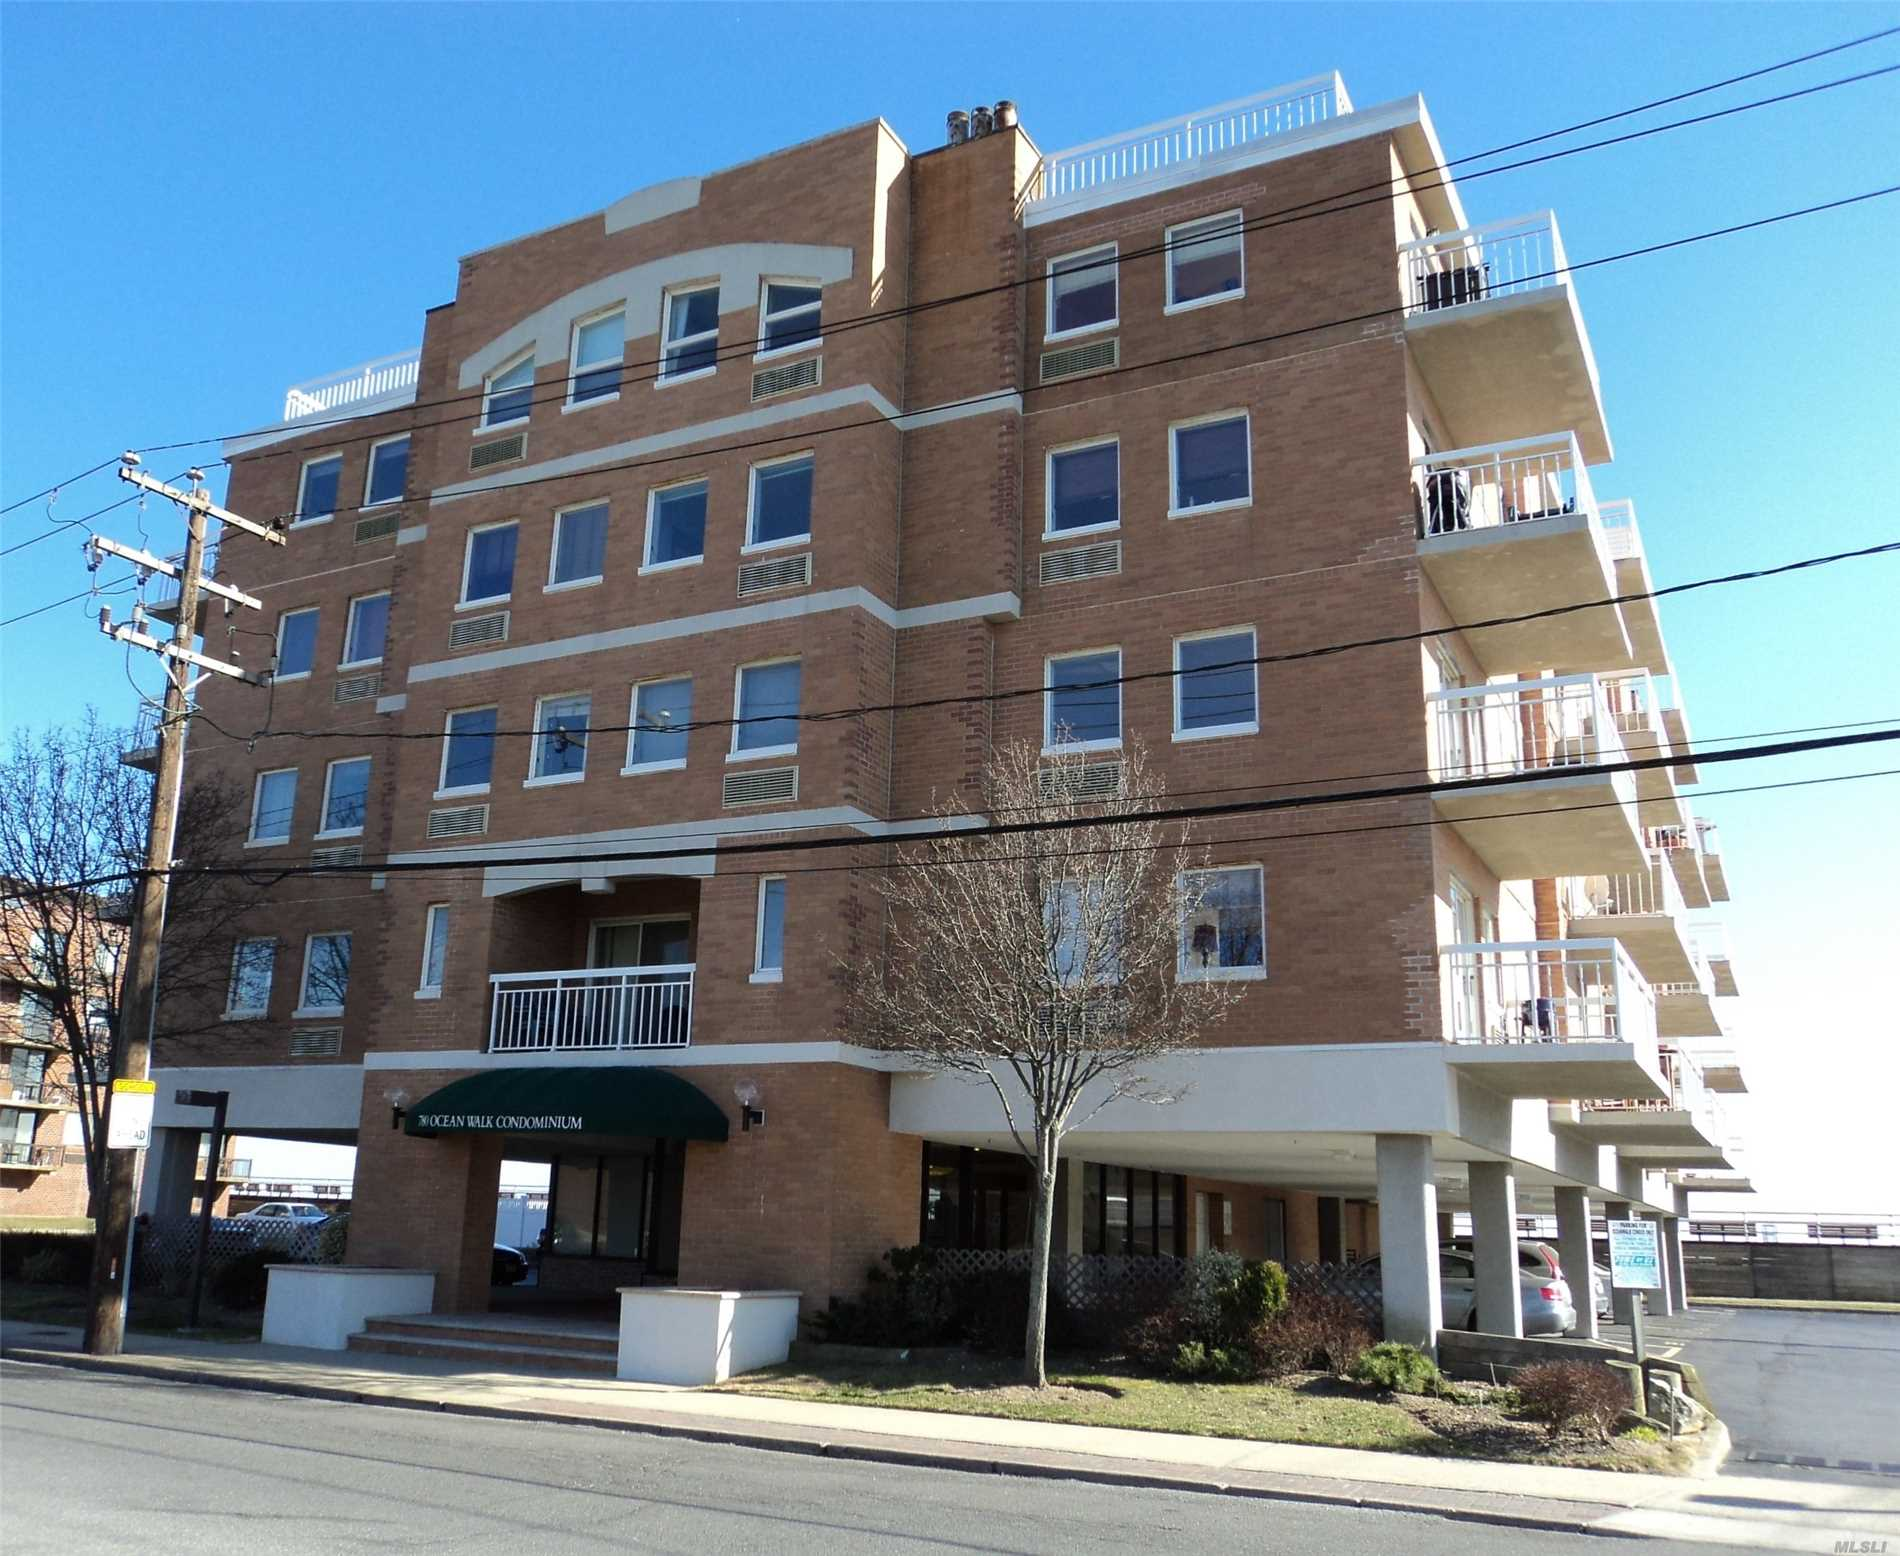 Furnished Off Season Rental Until 5/15/19. Cozy One Bedroom, One Bath Condo With Terrace And Ocean View. Unit Has Wood Floors, Updated Kitchen And Bathroom, Desk Area. Washer/Dryer In Unit. Building Has Parking, Gym, Roof Top Deck. No Pets. Ocean Walk Condo.